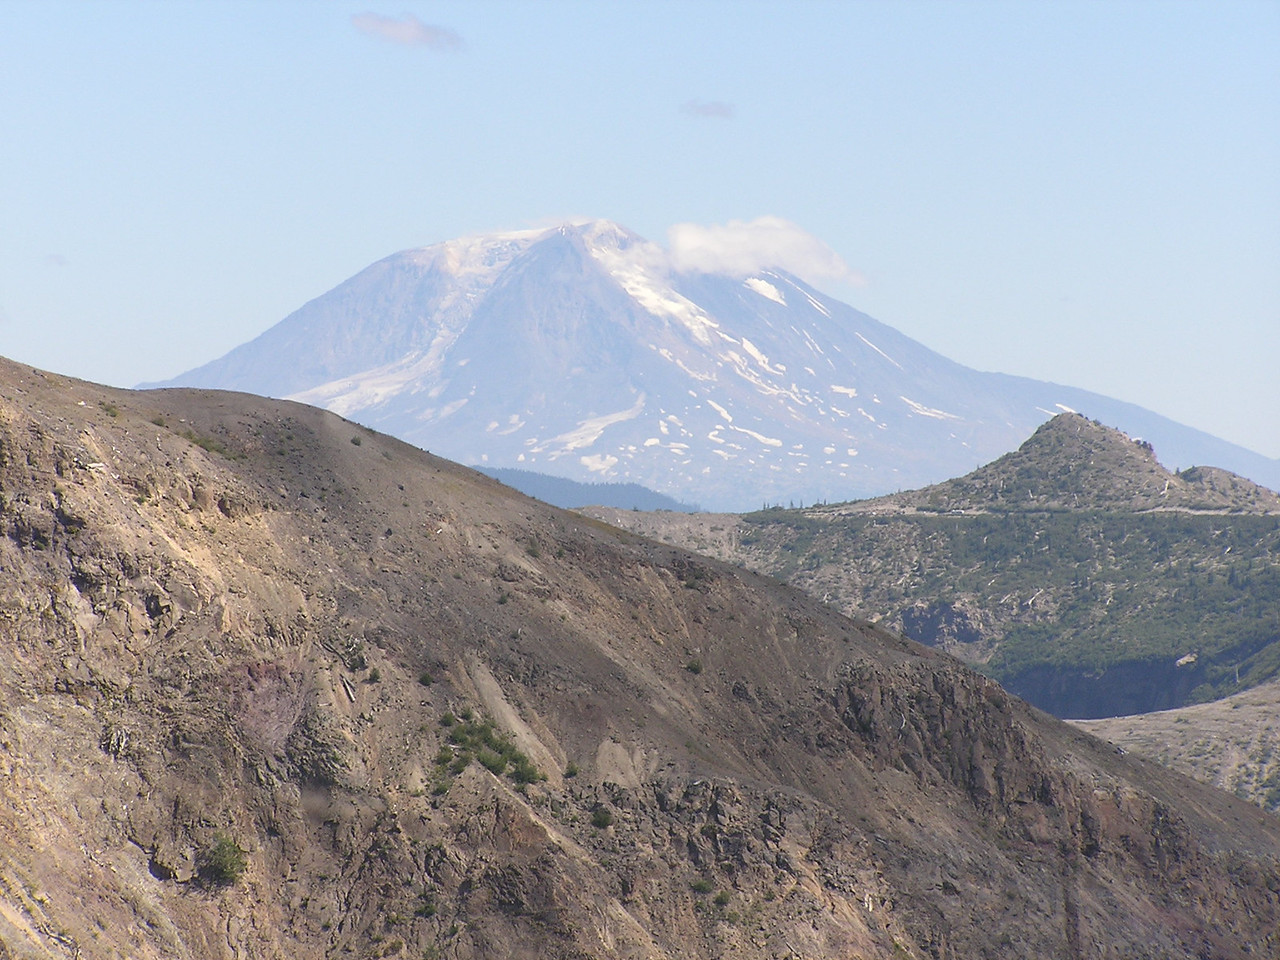 Mount Adams from the Boundary Trail east of the Johnston Observatory at Mt St Helens.  Looking east above Spirit Lake.